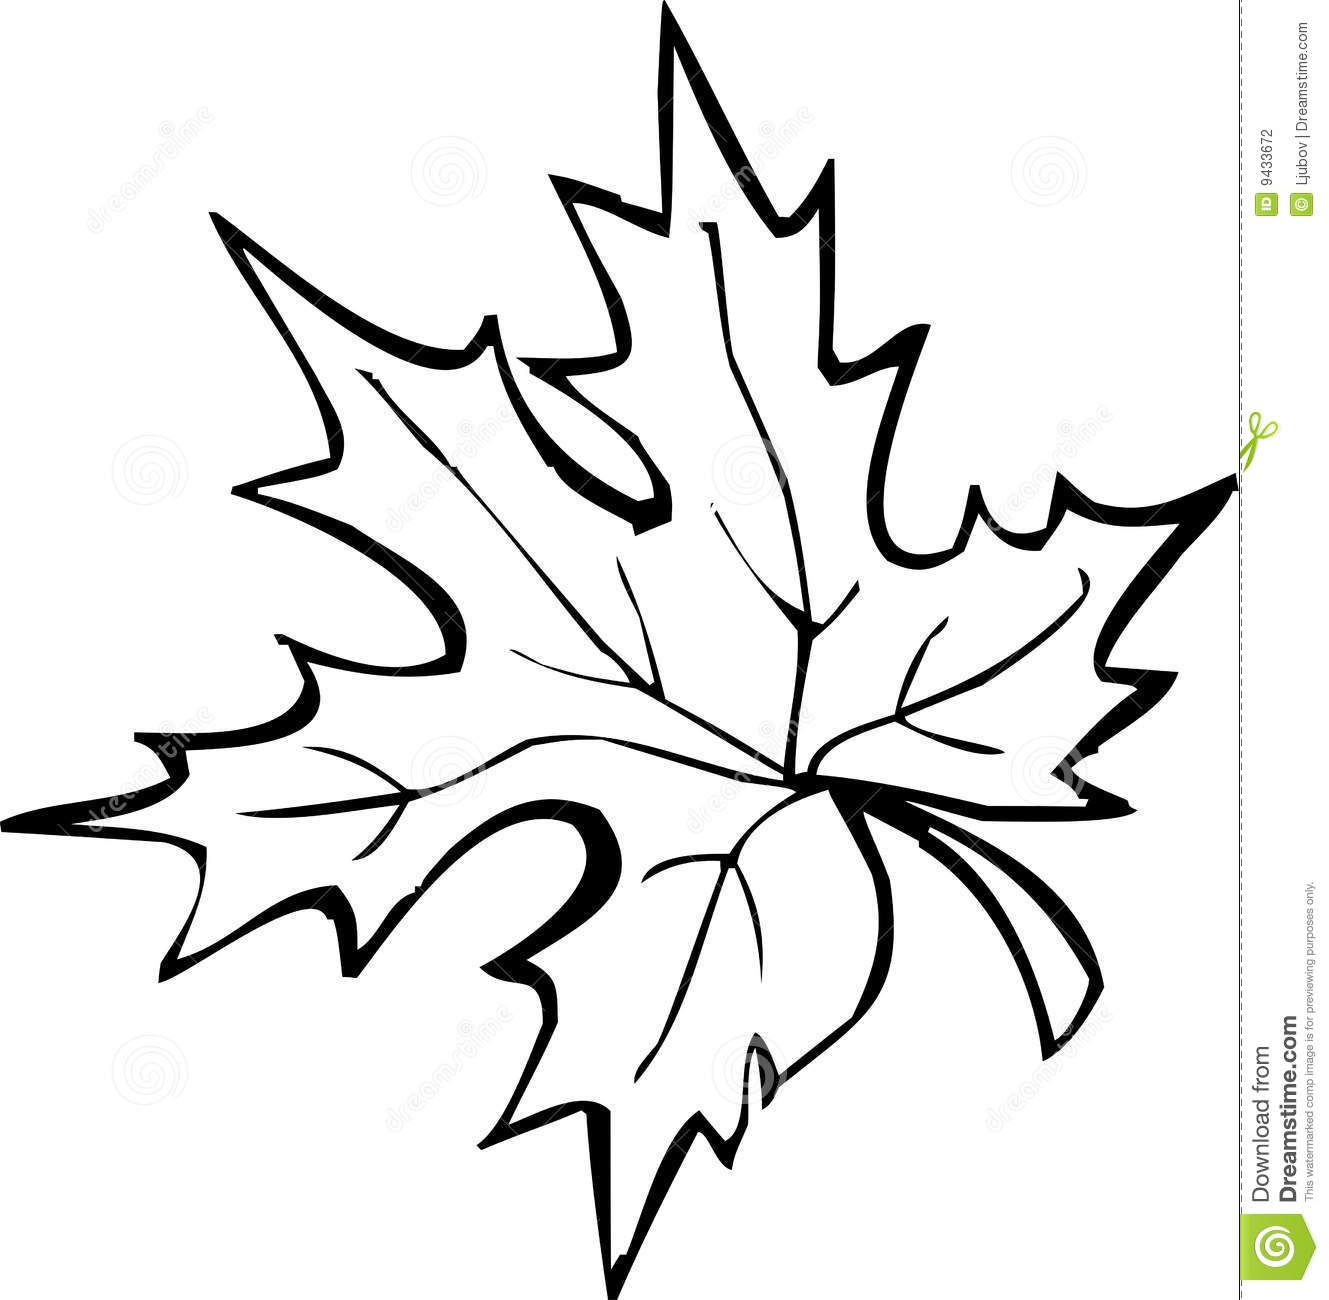 Maple leaf clipart black and white vector transparent stock Maple Leaf Clipart Black And White Clipart Panda Free Clipart | Clip ... vector transparent stock